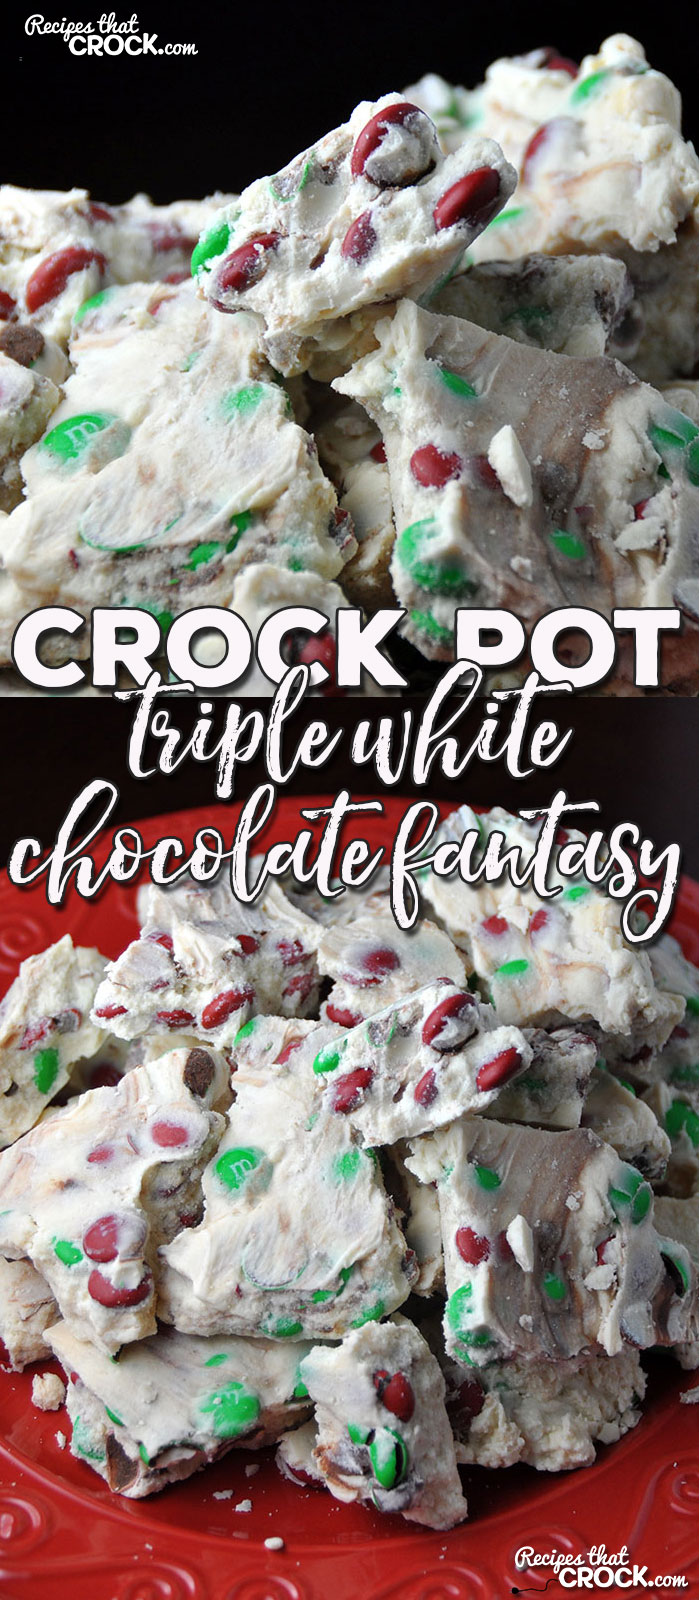 Are you looking for a delicious treat to take to your next party, pitch-in or just to treat yourself? Then you definitely don't want to miss this amazing Crock Pot Triple White Chocolate Fantasy!